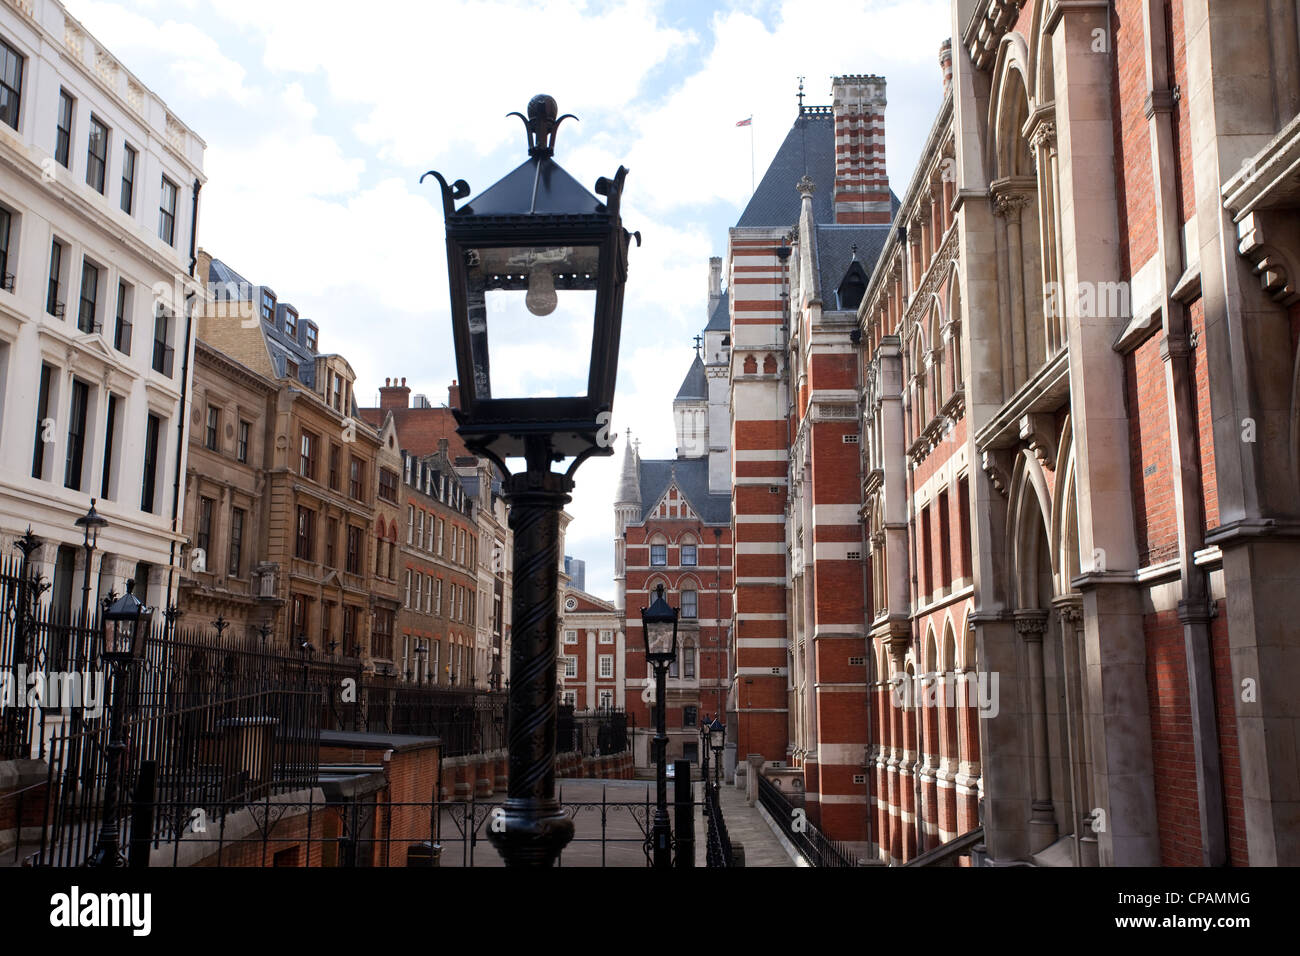 Bell Yard, High Court, The Royal Courts of Justice, London, England, UK. - Stock Image